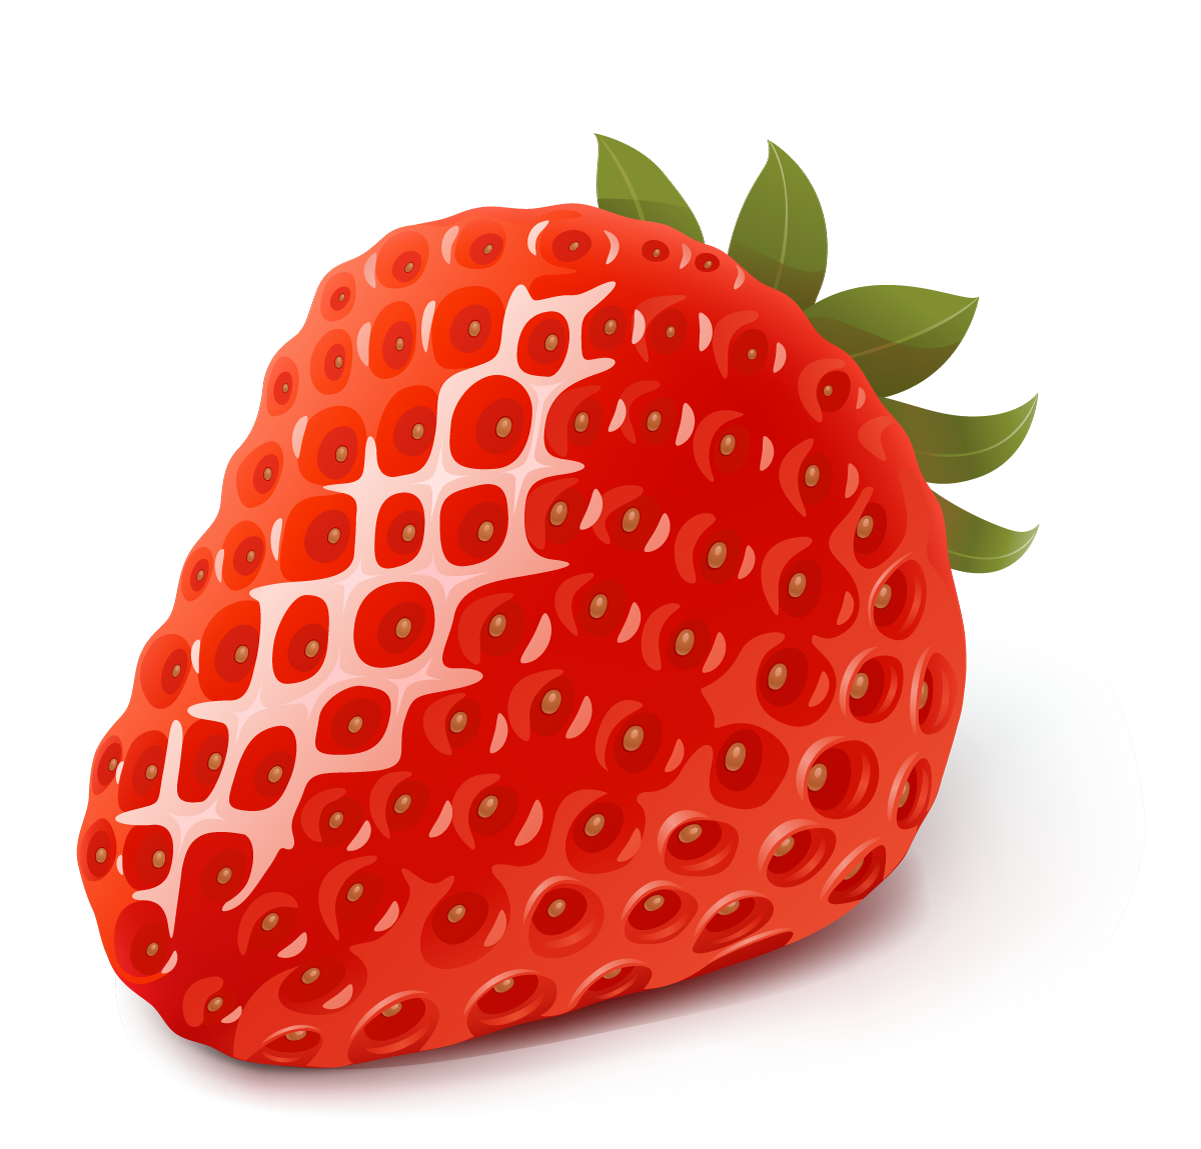 Strawberry Fruit Png image #22926